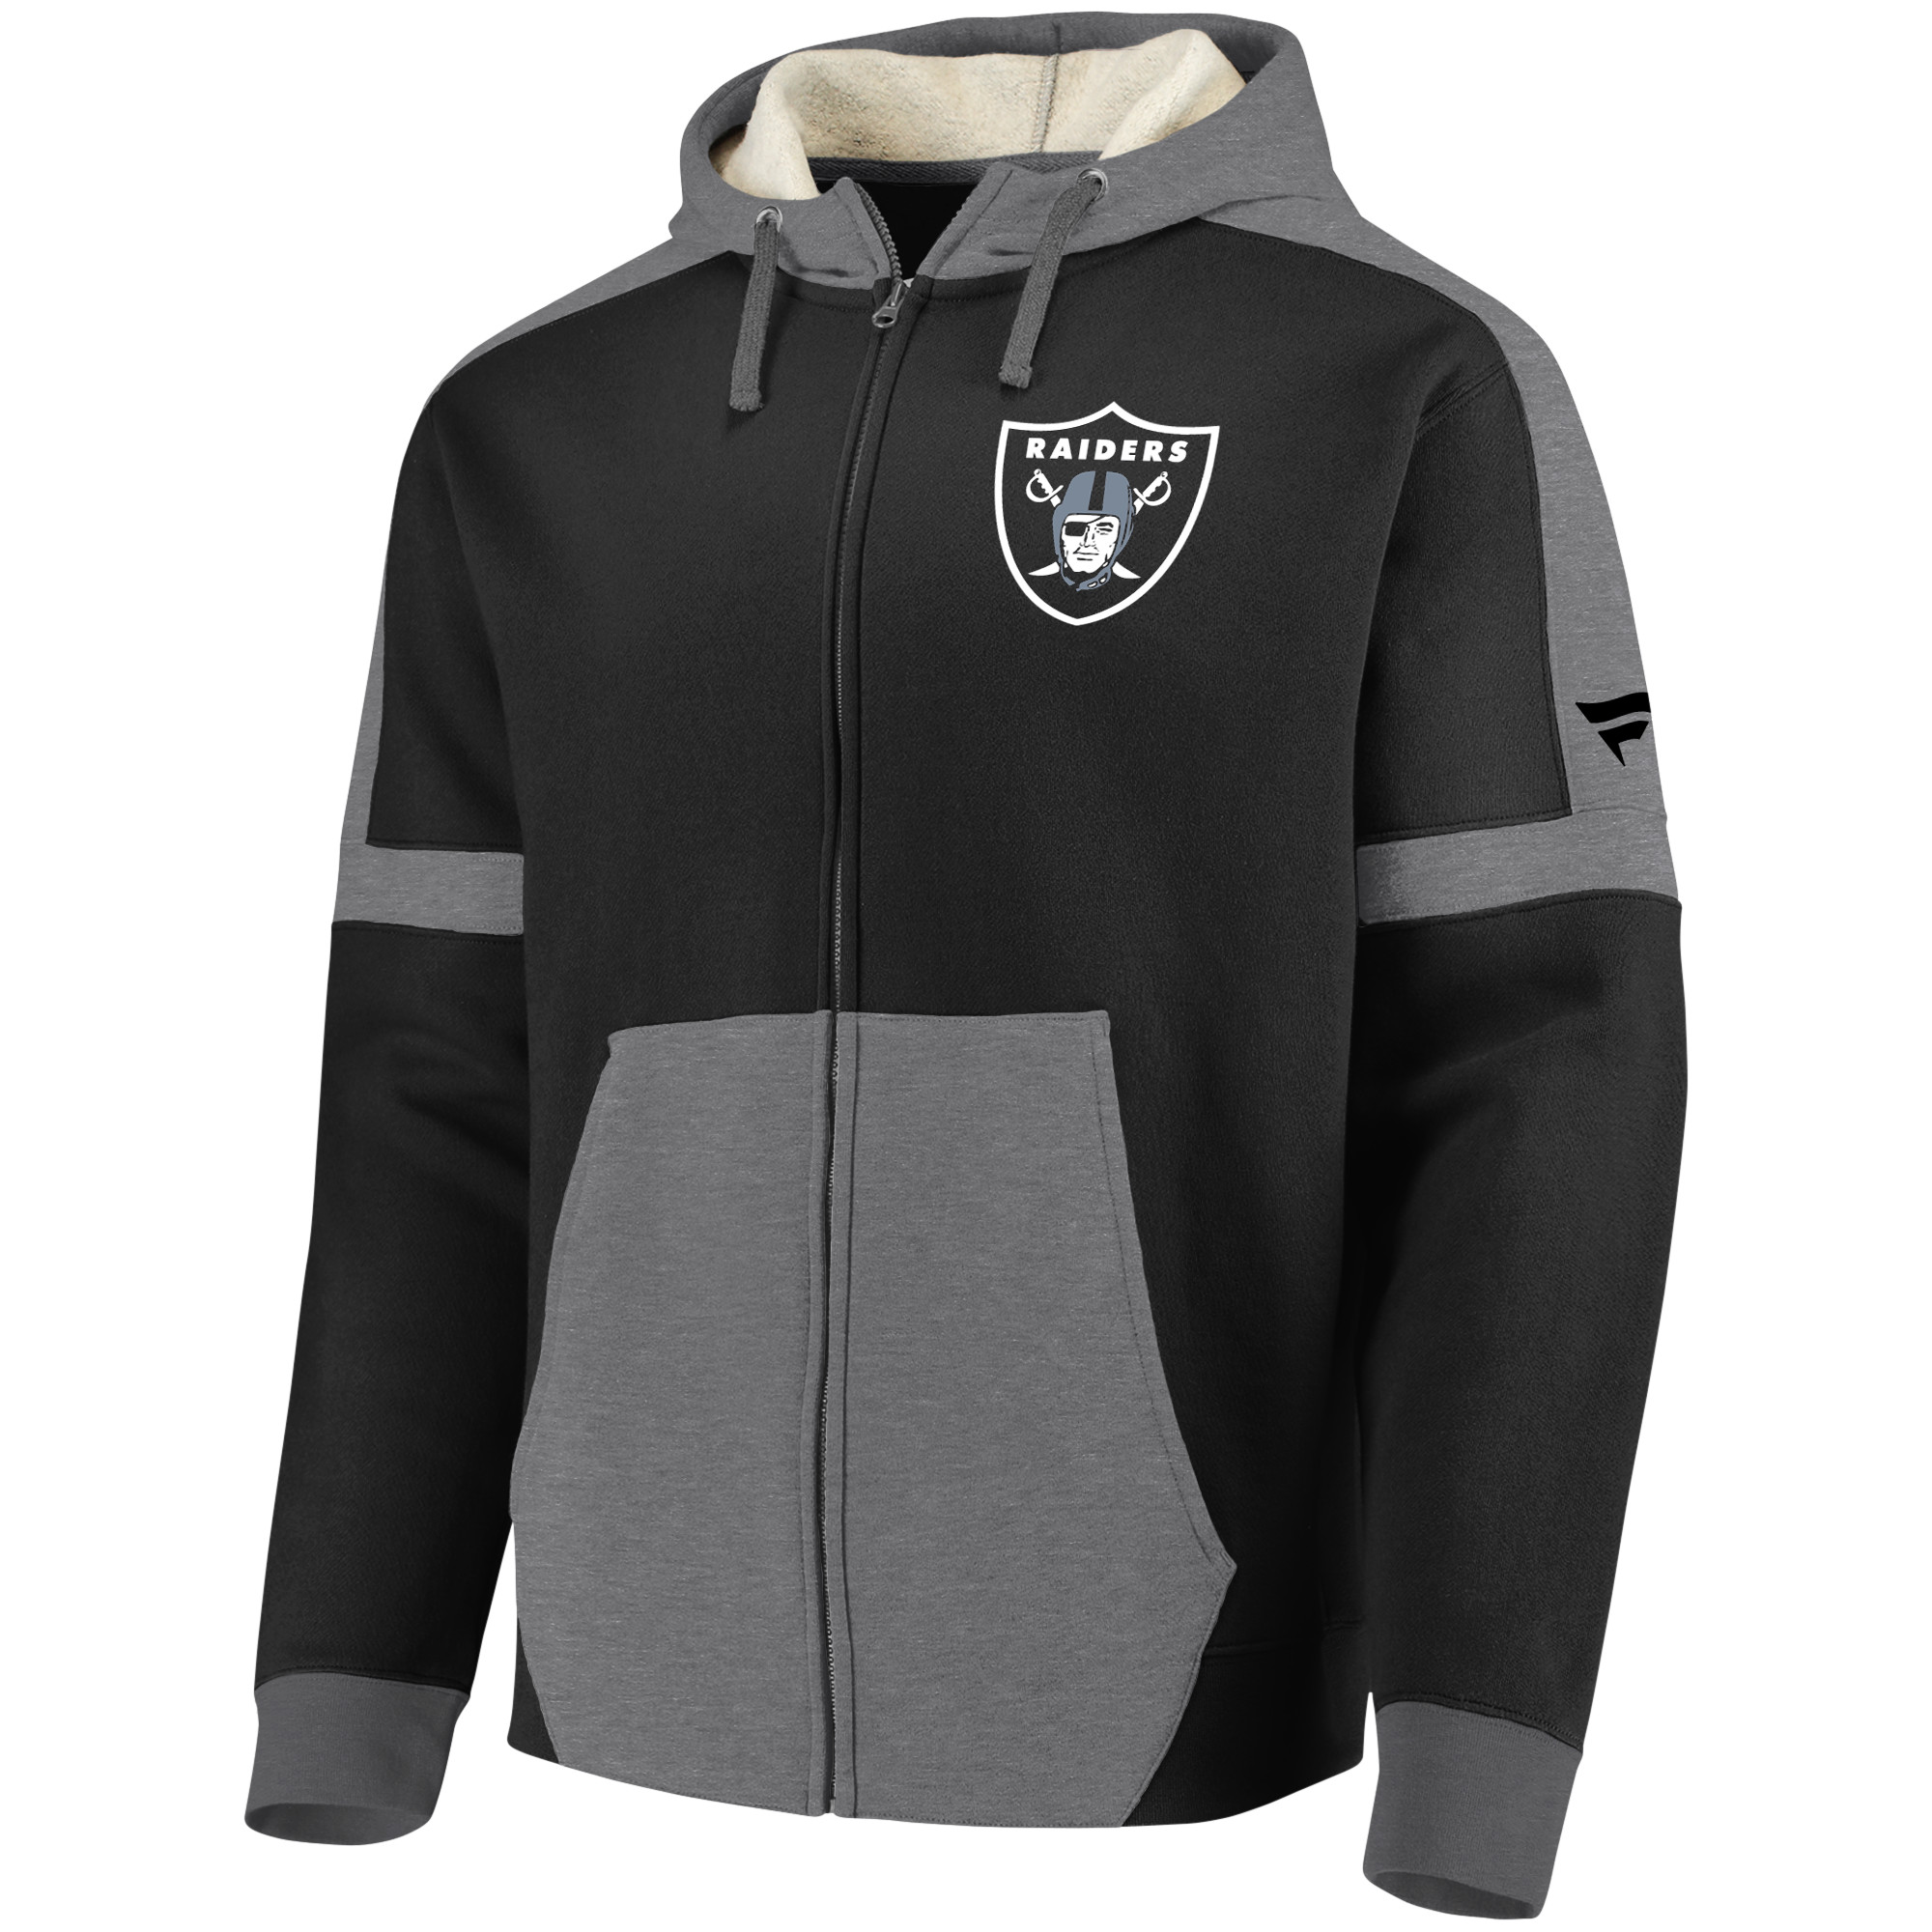 buy online 683fd 5371b Oakland Raiders NFL Pro Line by Fanatics Branded Iconic Full-Zip Hoodie -  Black/Heathered Gray - S